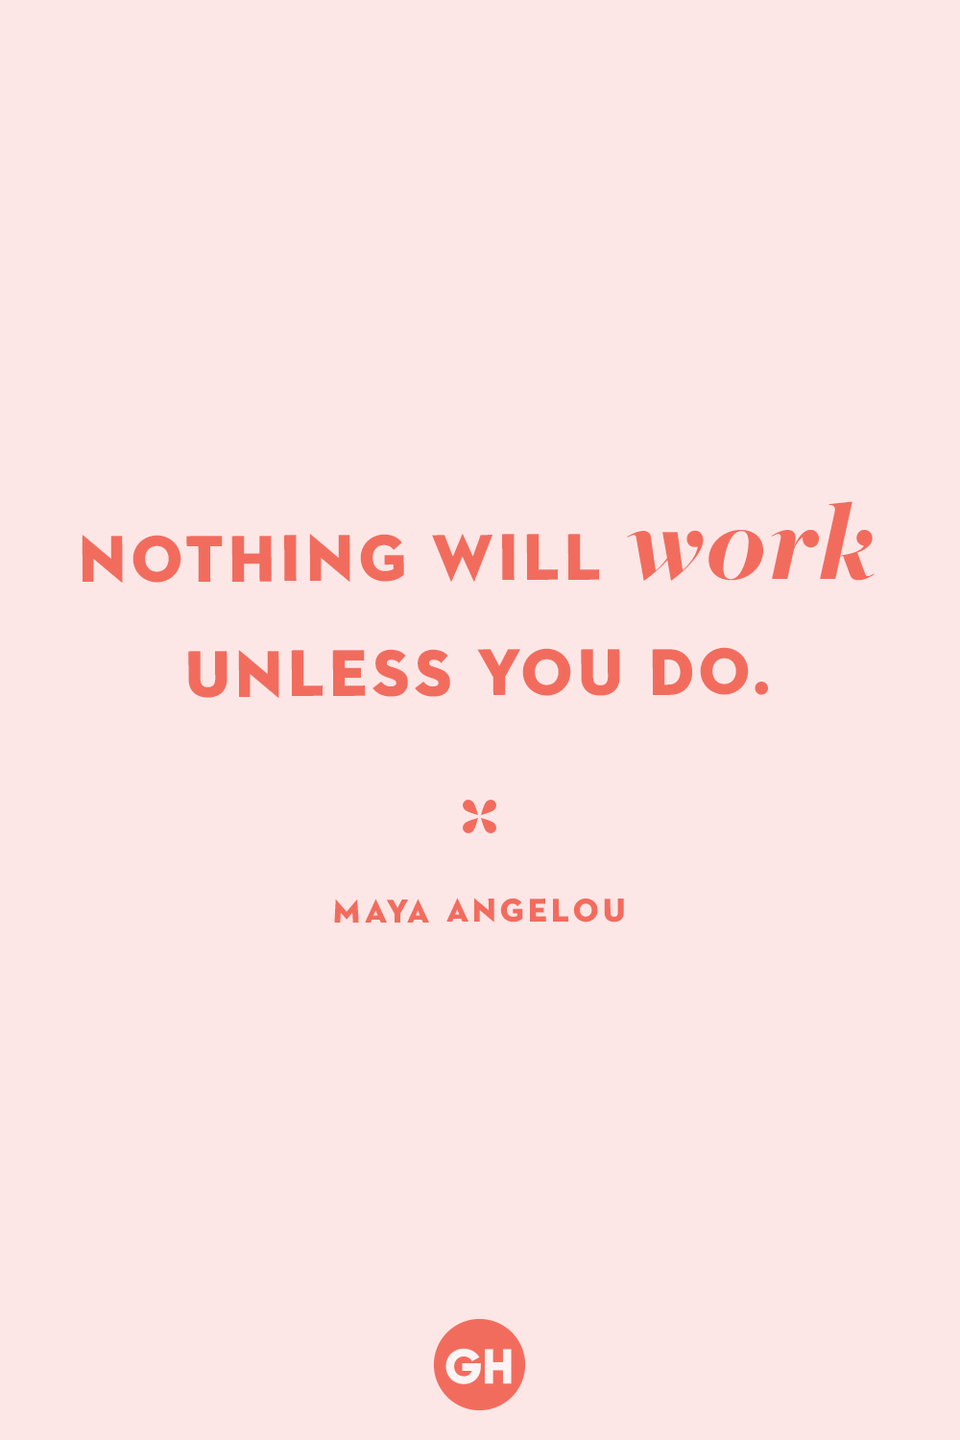 <p>Nothing will work unless you do.</p>